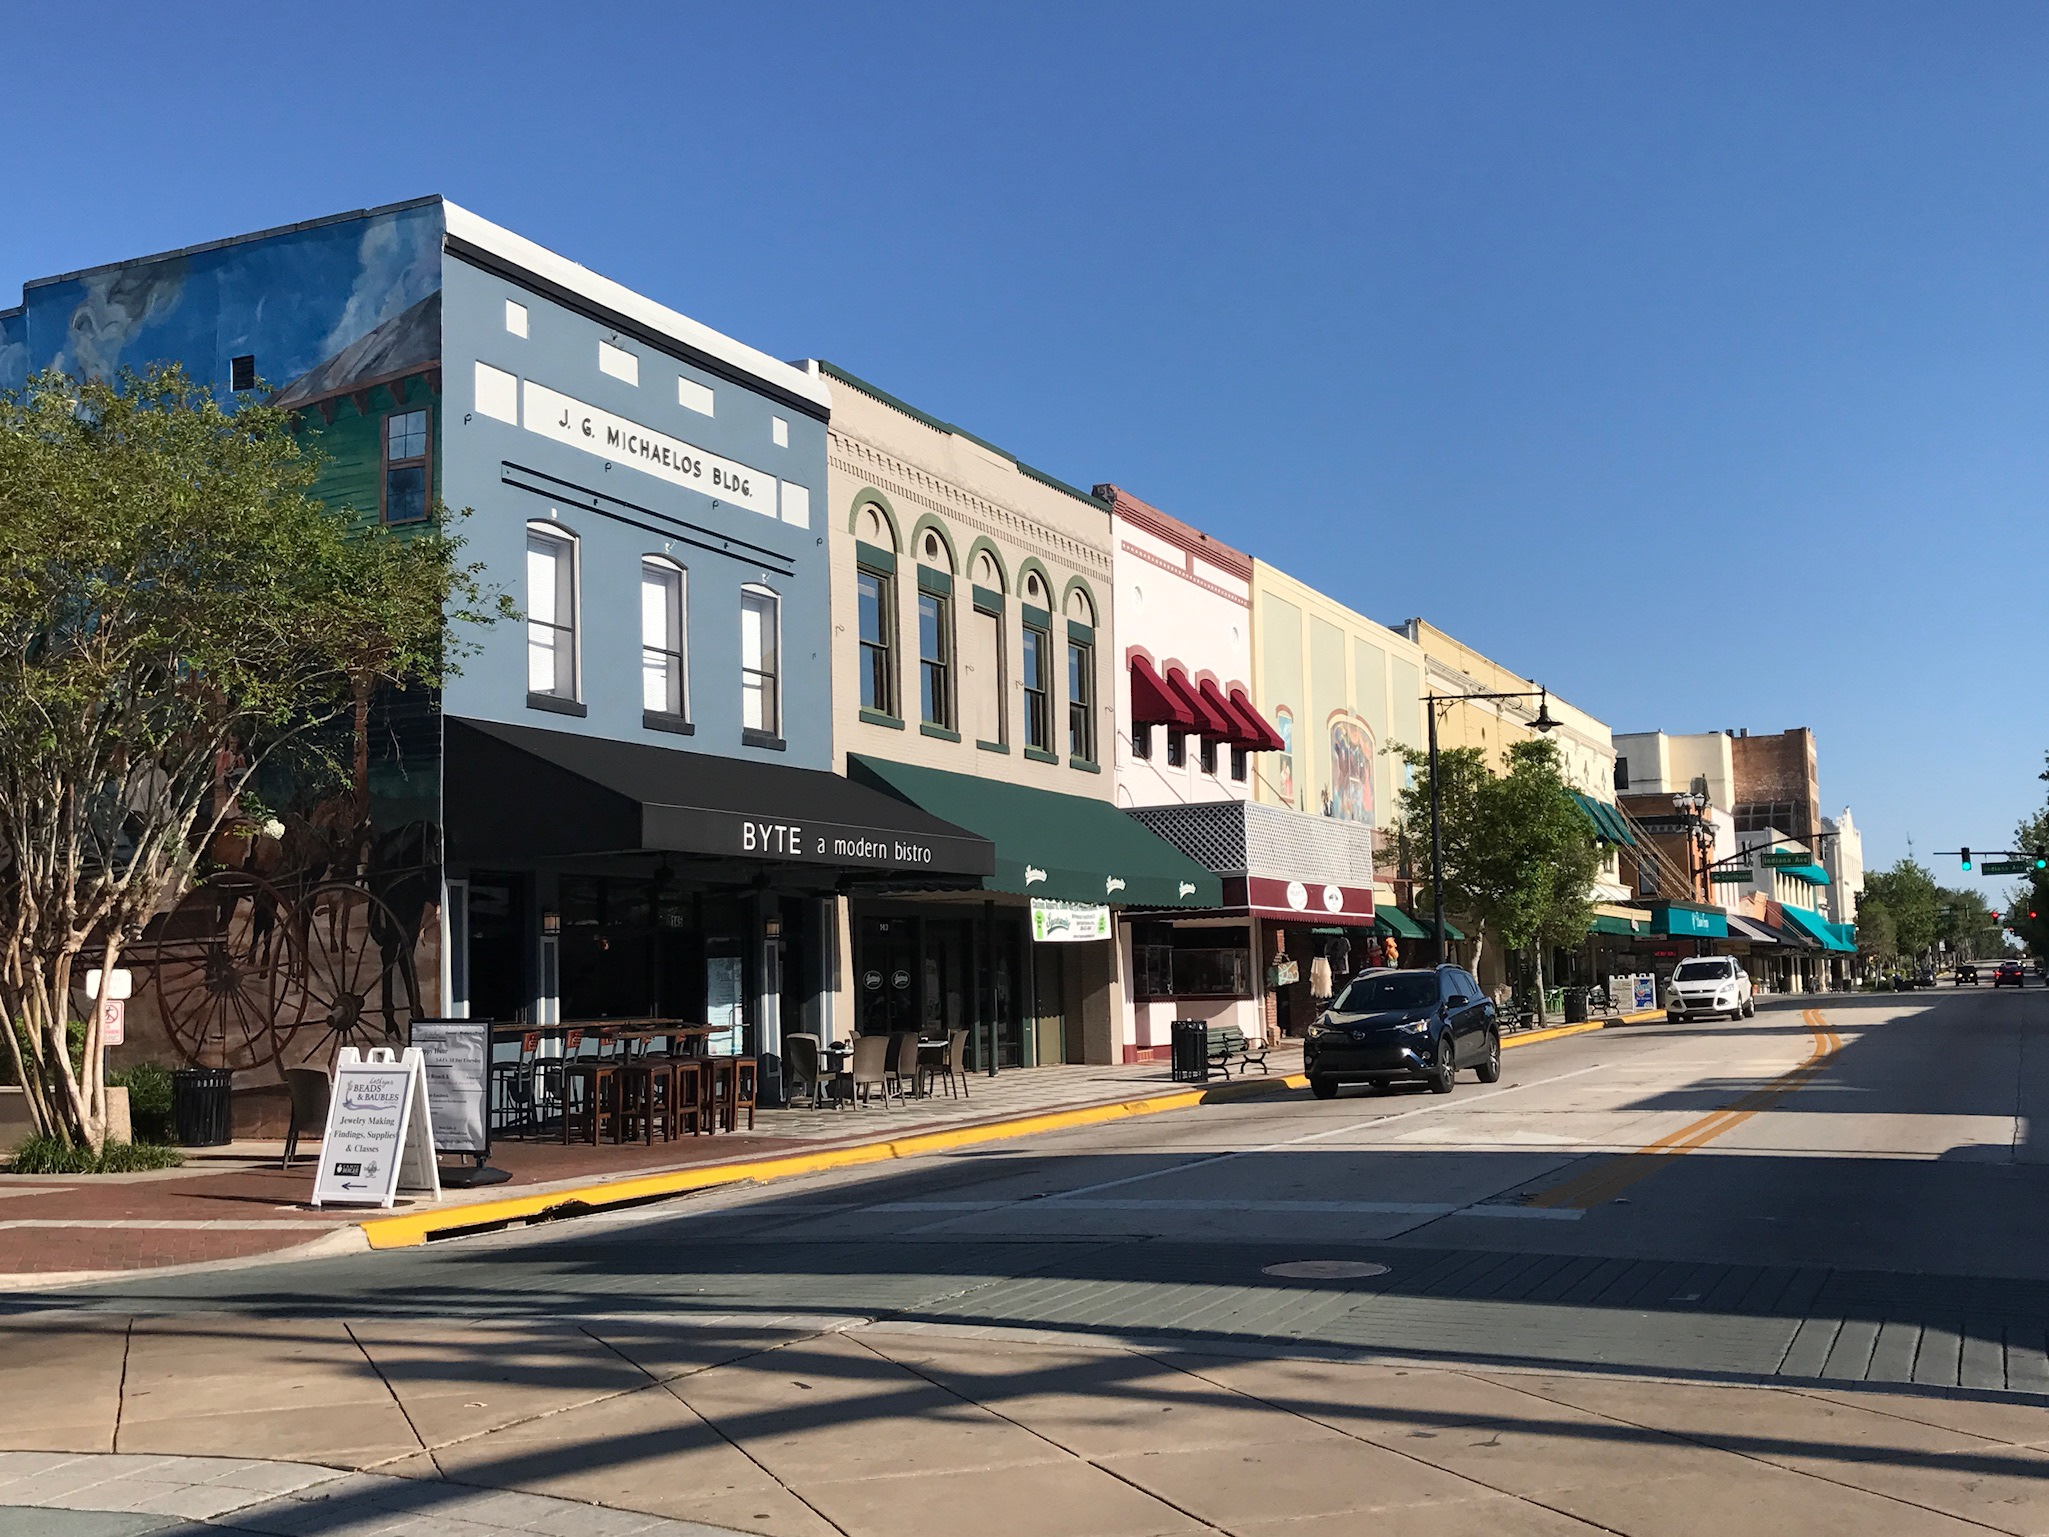 One of the Most Charming Downtowns in Florida